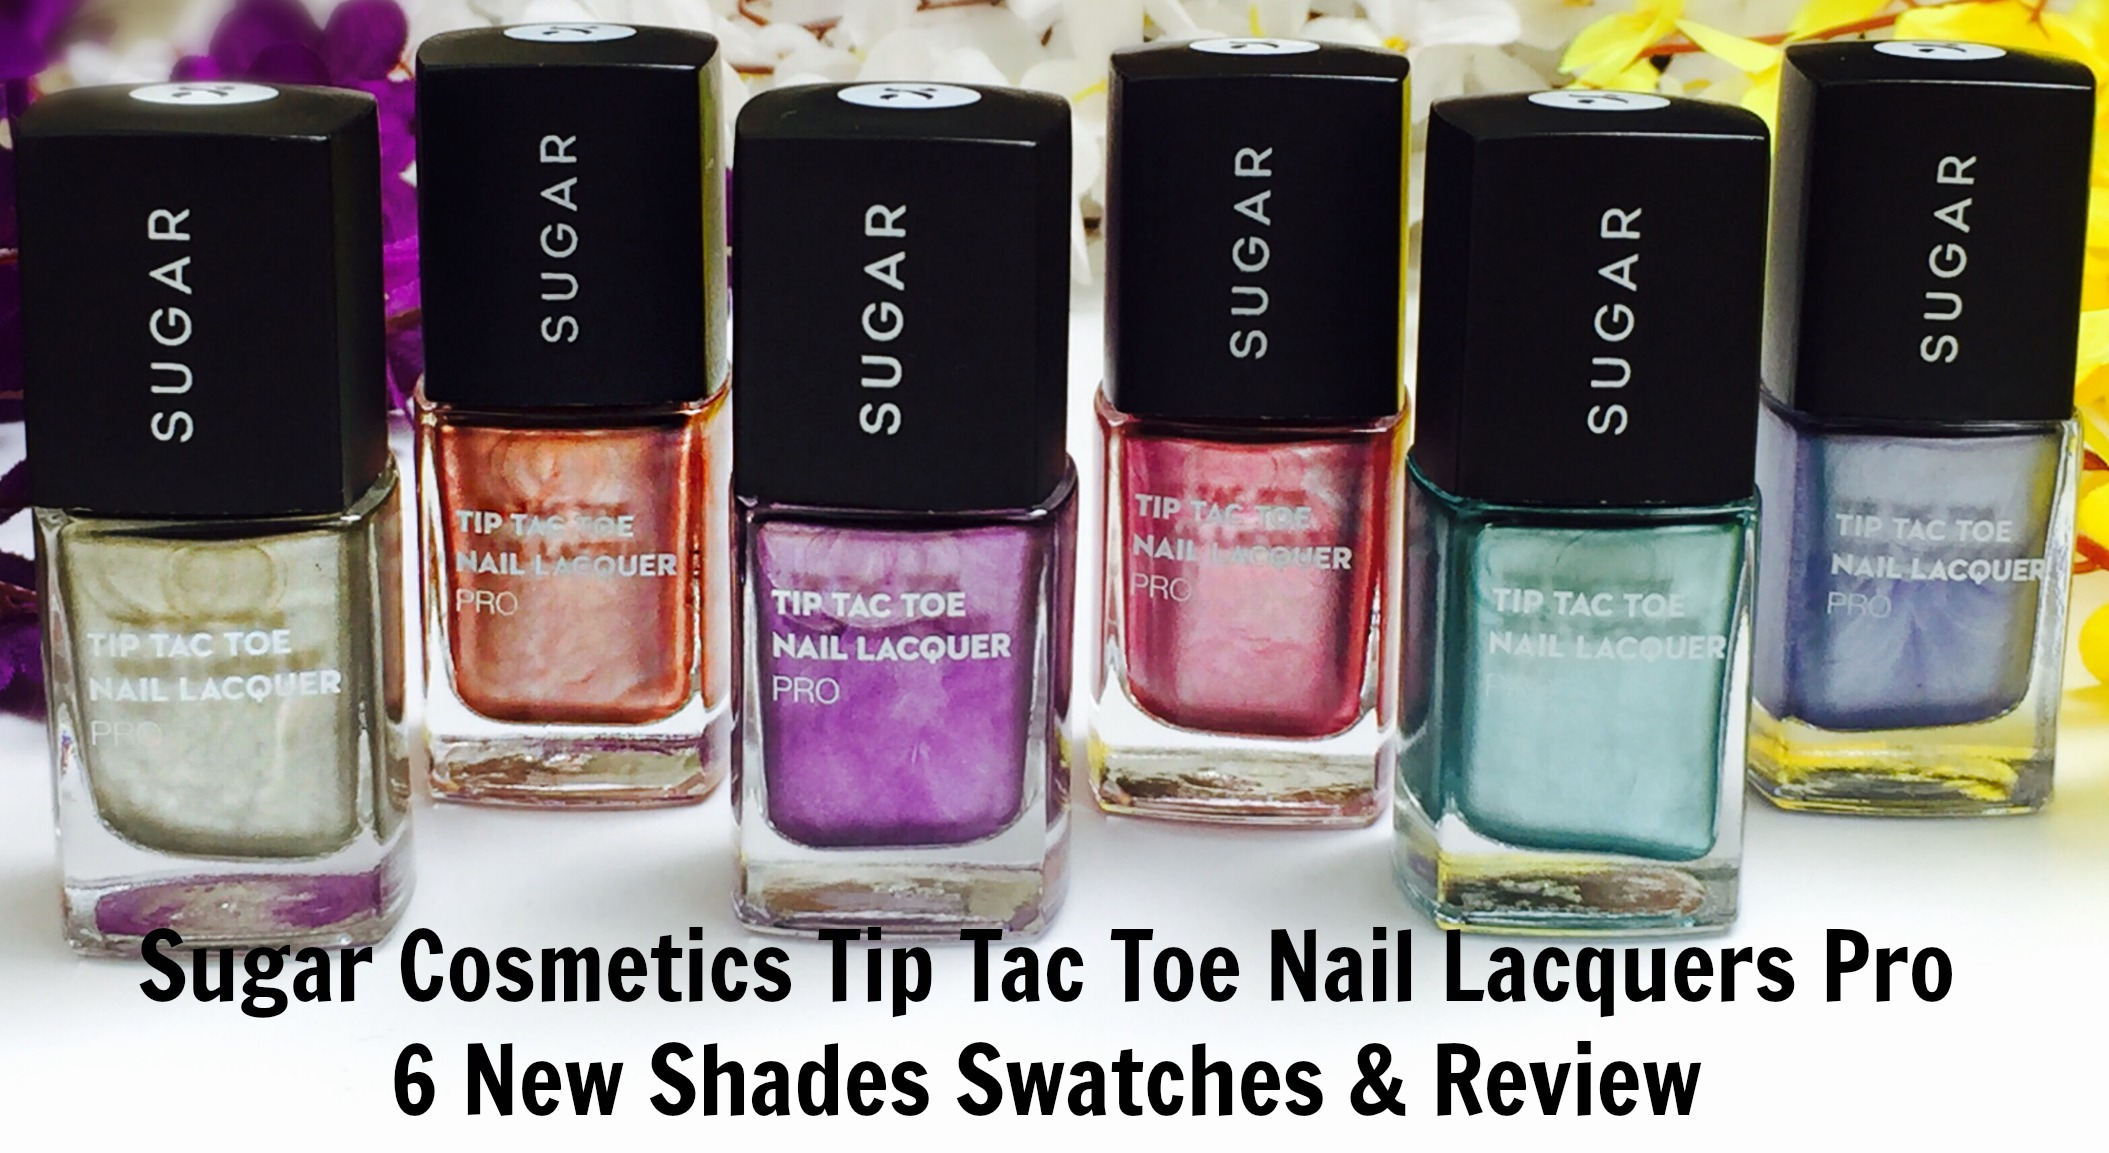 Sugar Cosmetics Tip Tac Toe Nail Lacquers Pro 6 New Shades Swatches & Review